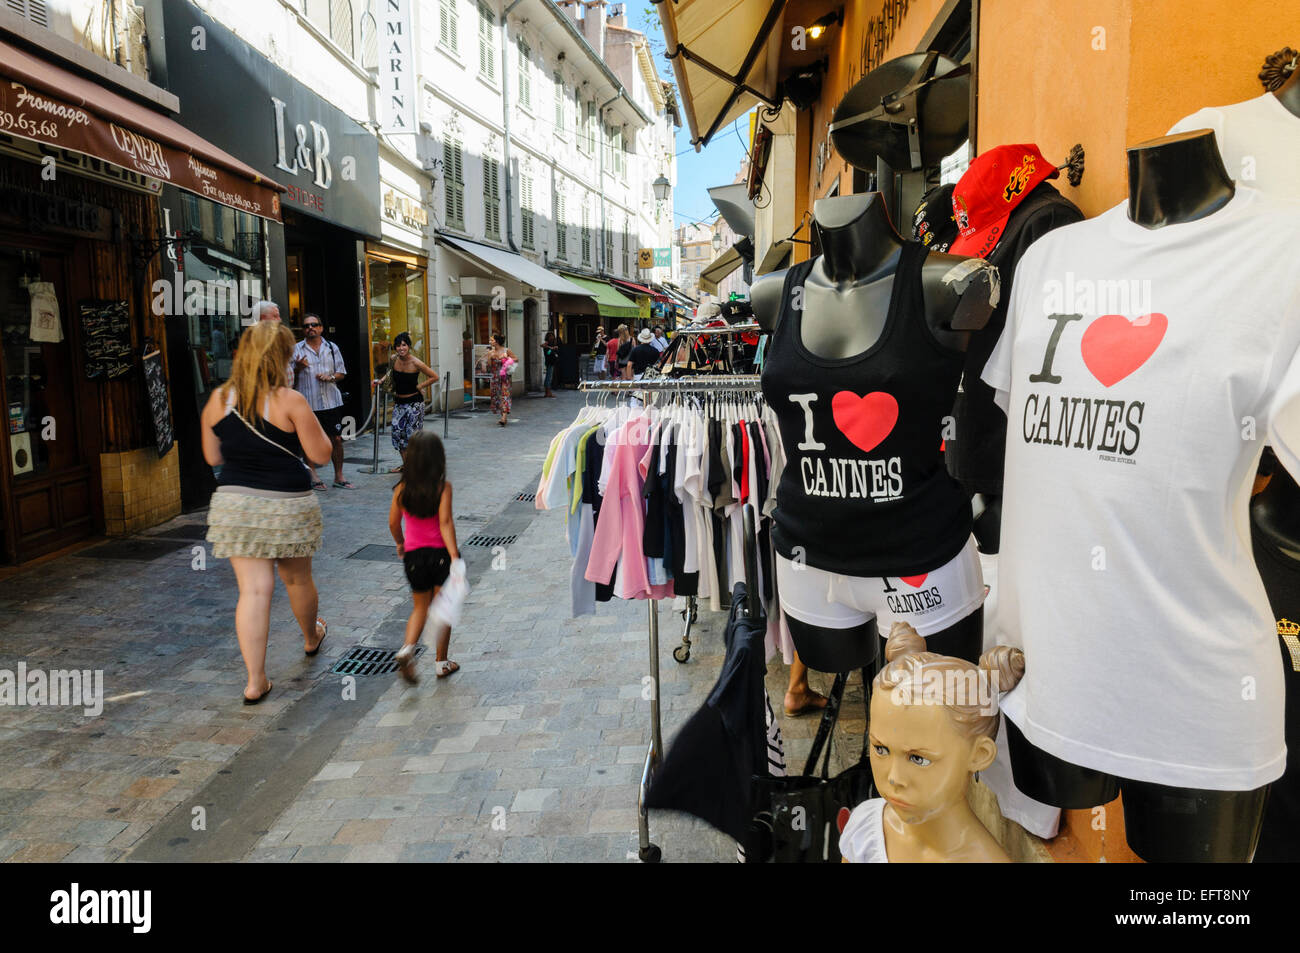 'I love Cannes' tee shirts on sale in a shop in Cannes, France. - Stock Image